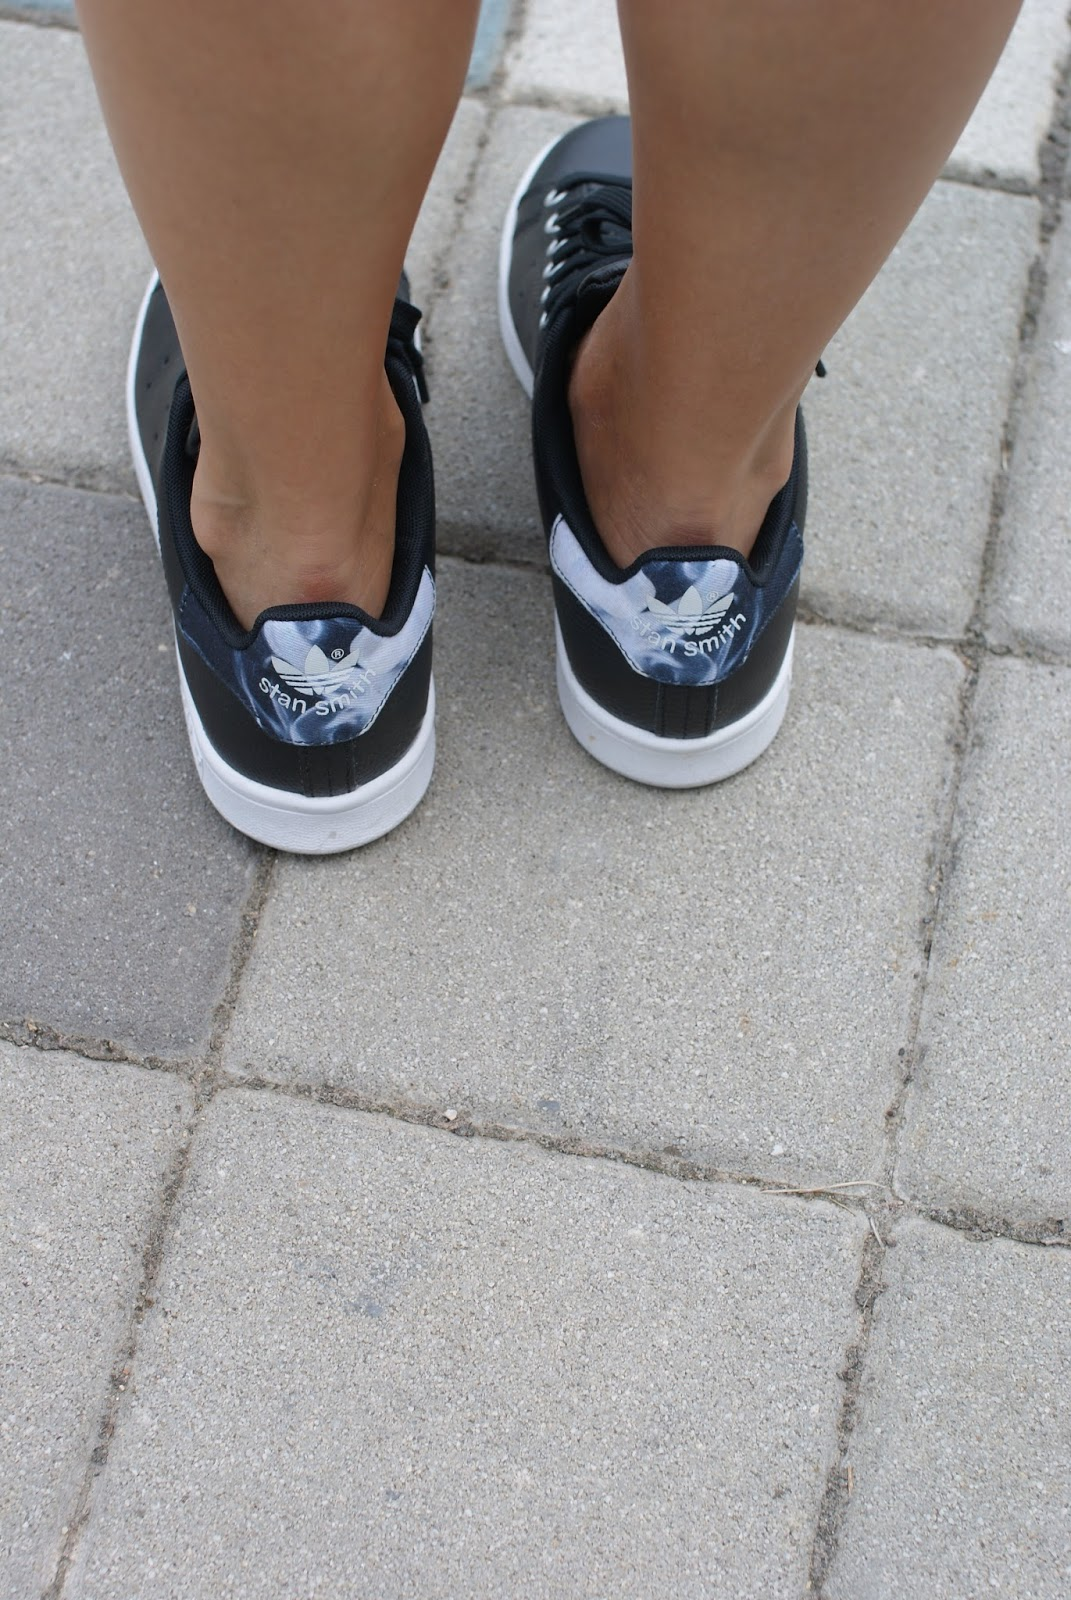 adidas Originals Stan Smith Rita Ora sneakers on Fashion and Cookies fashion blog